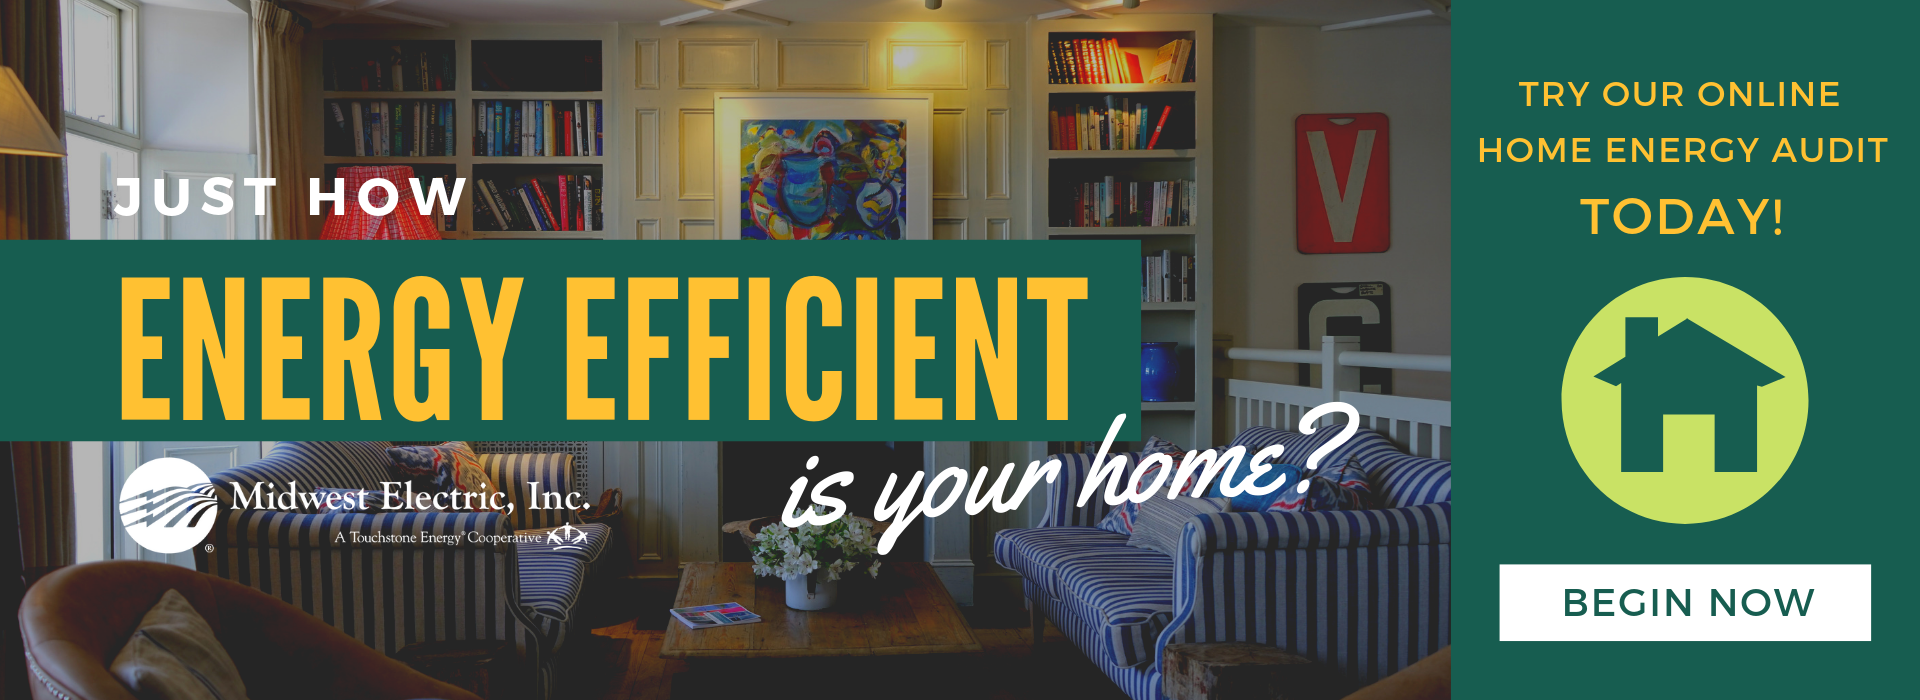 How energy efficient is your home? Try our online home energy audit today!